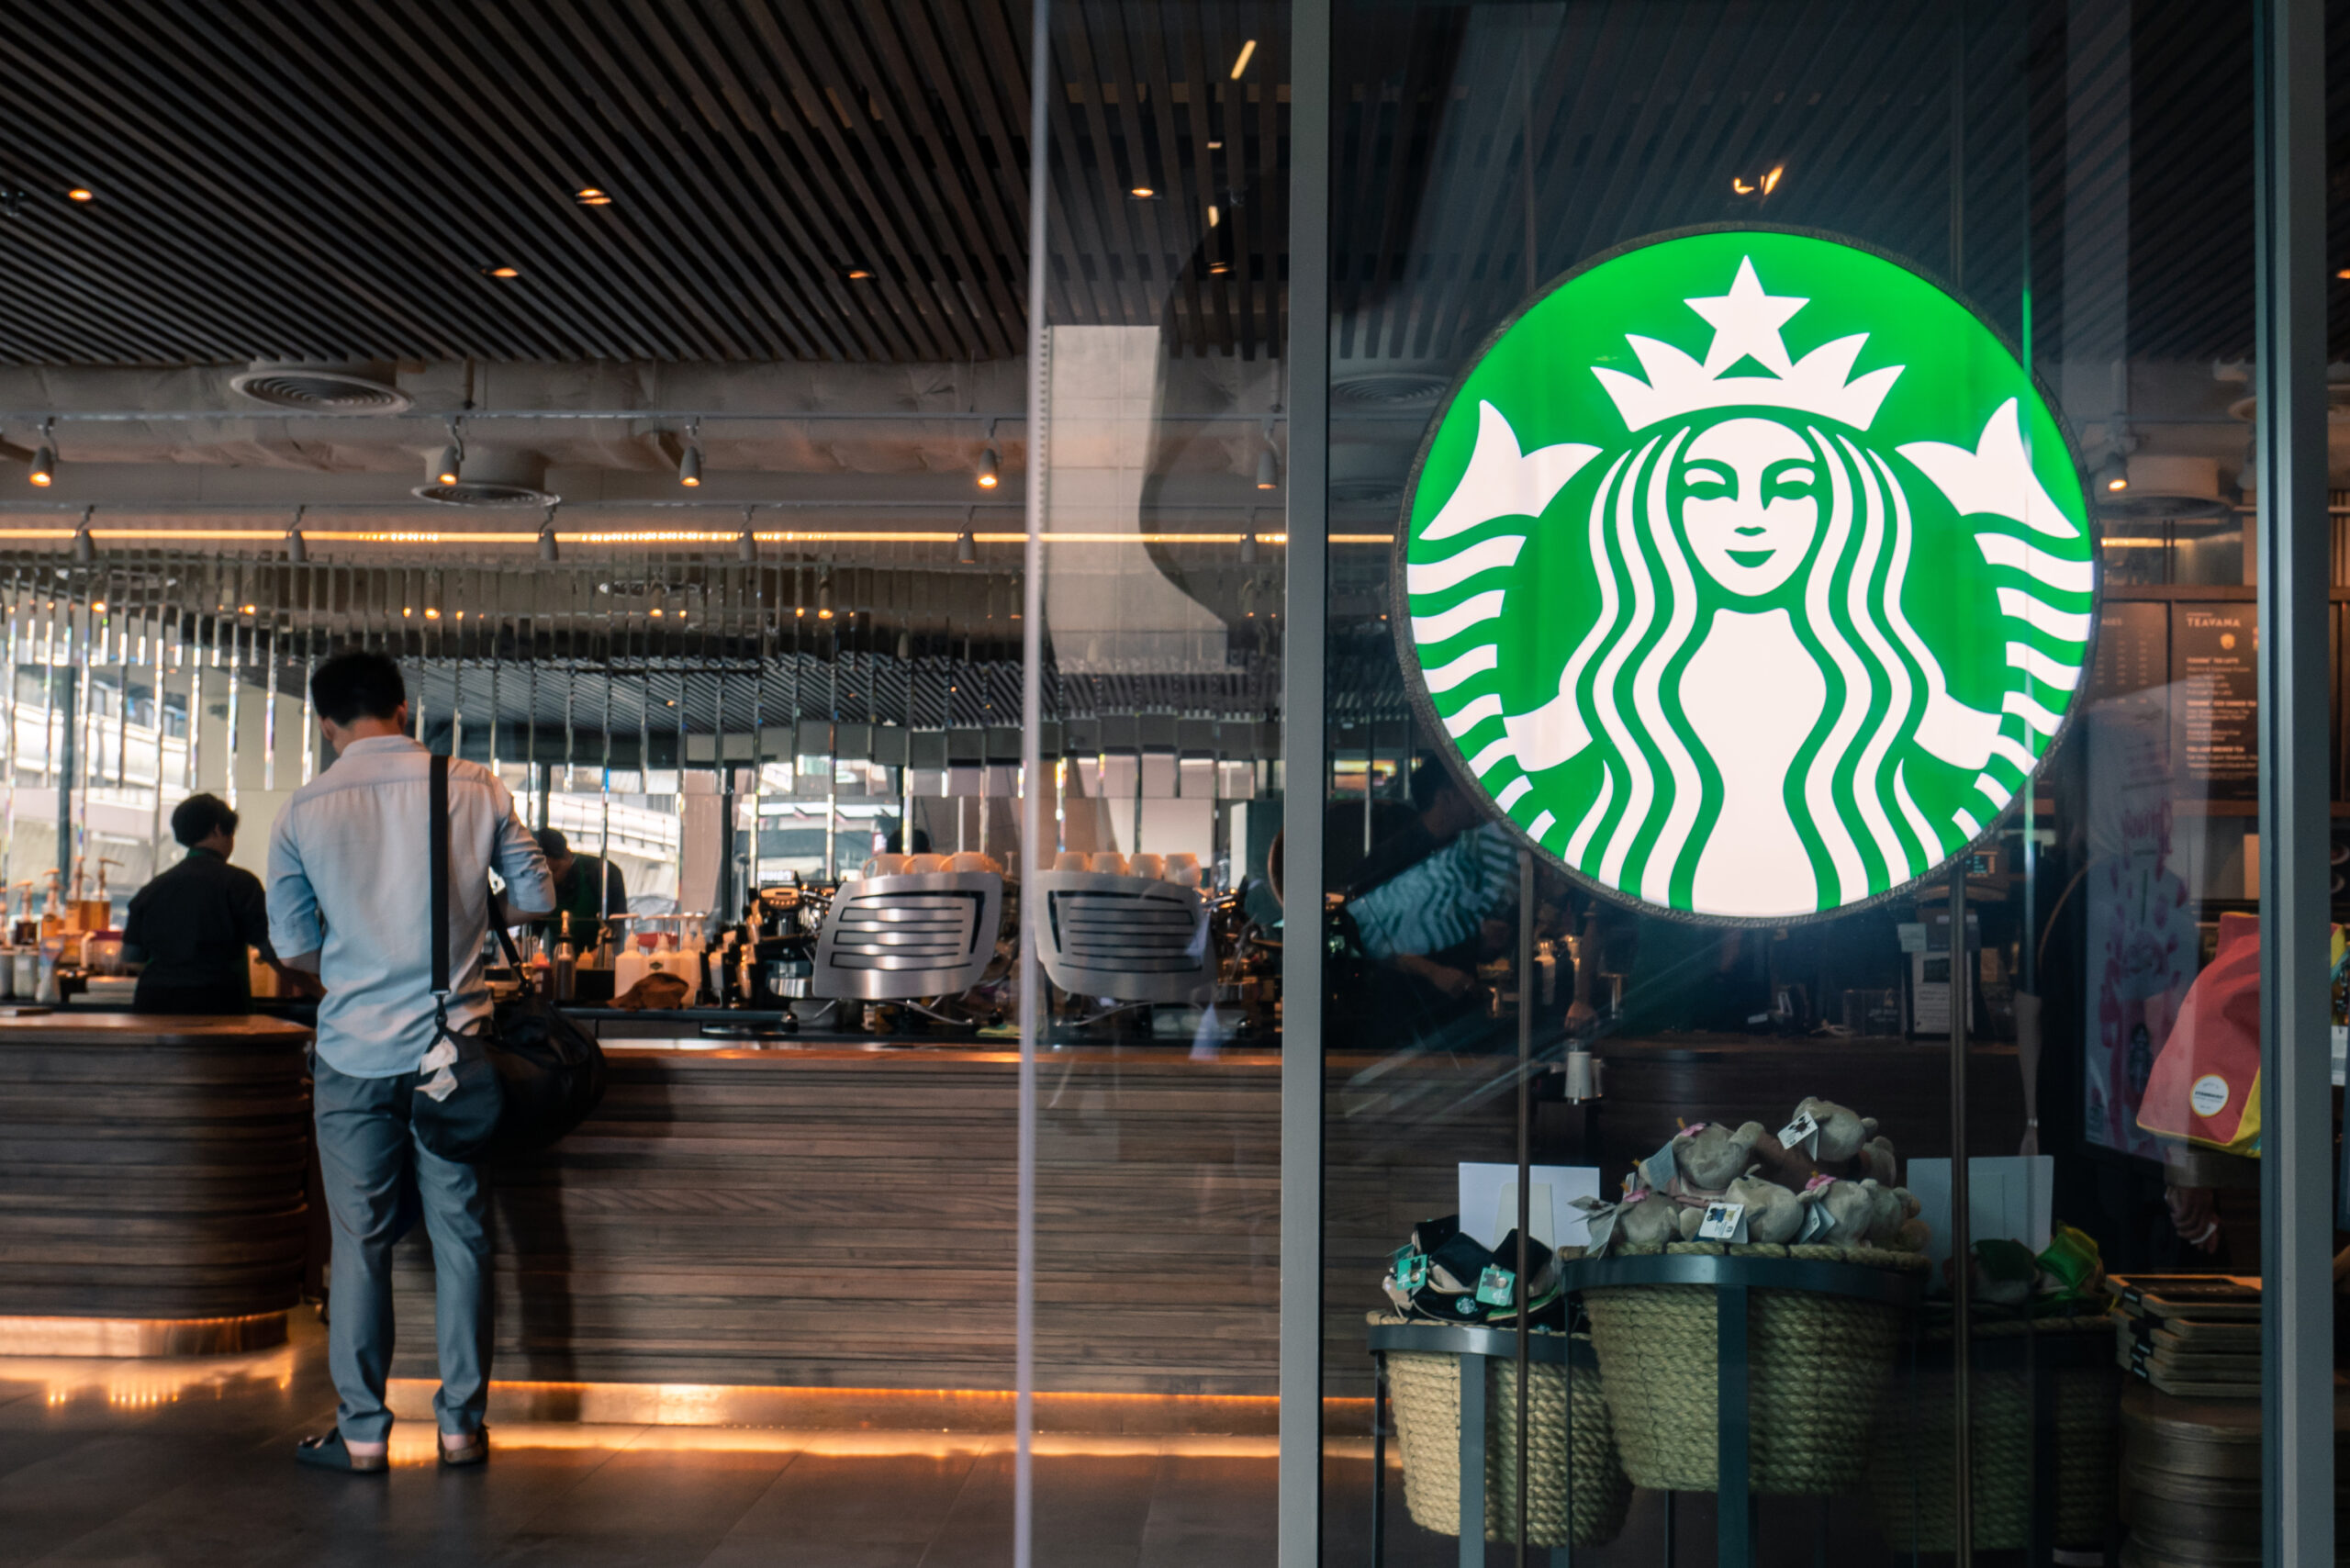 Starbucks' 50th celebrates people connecting over coffee